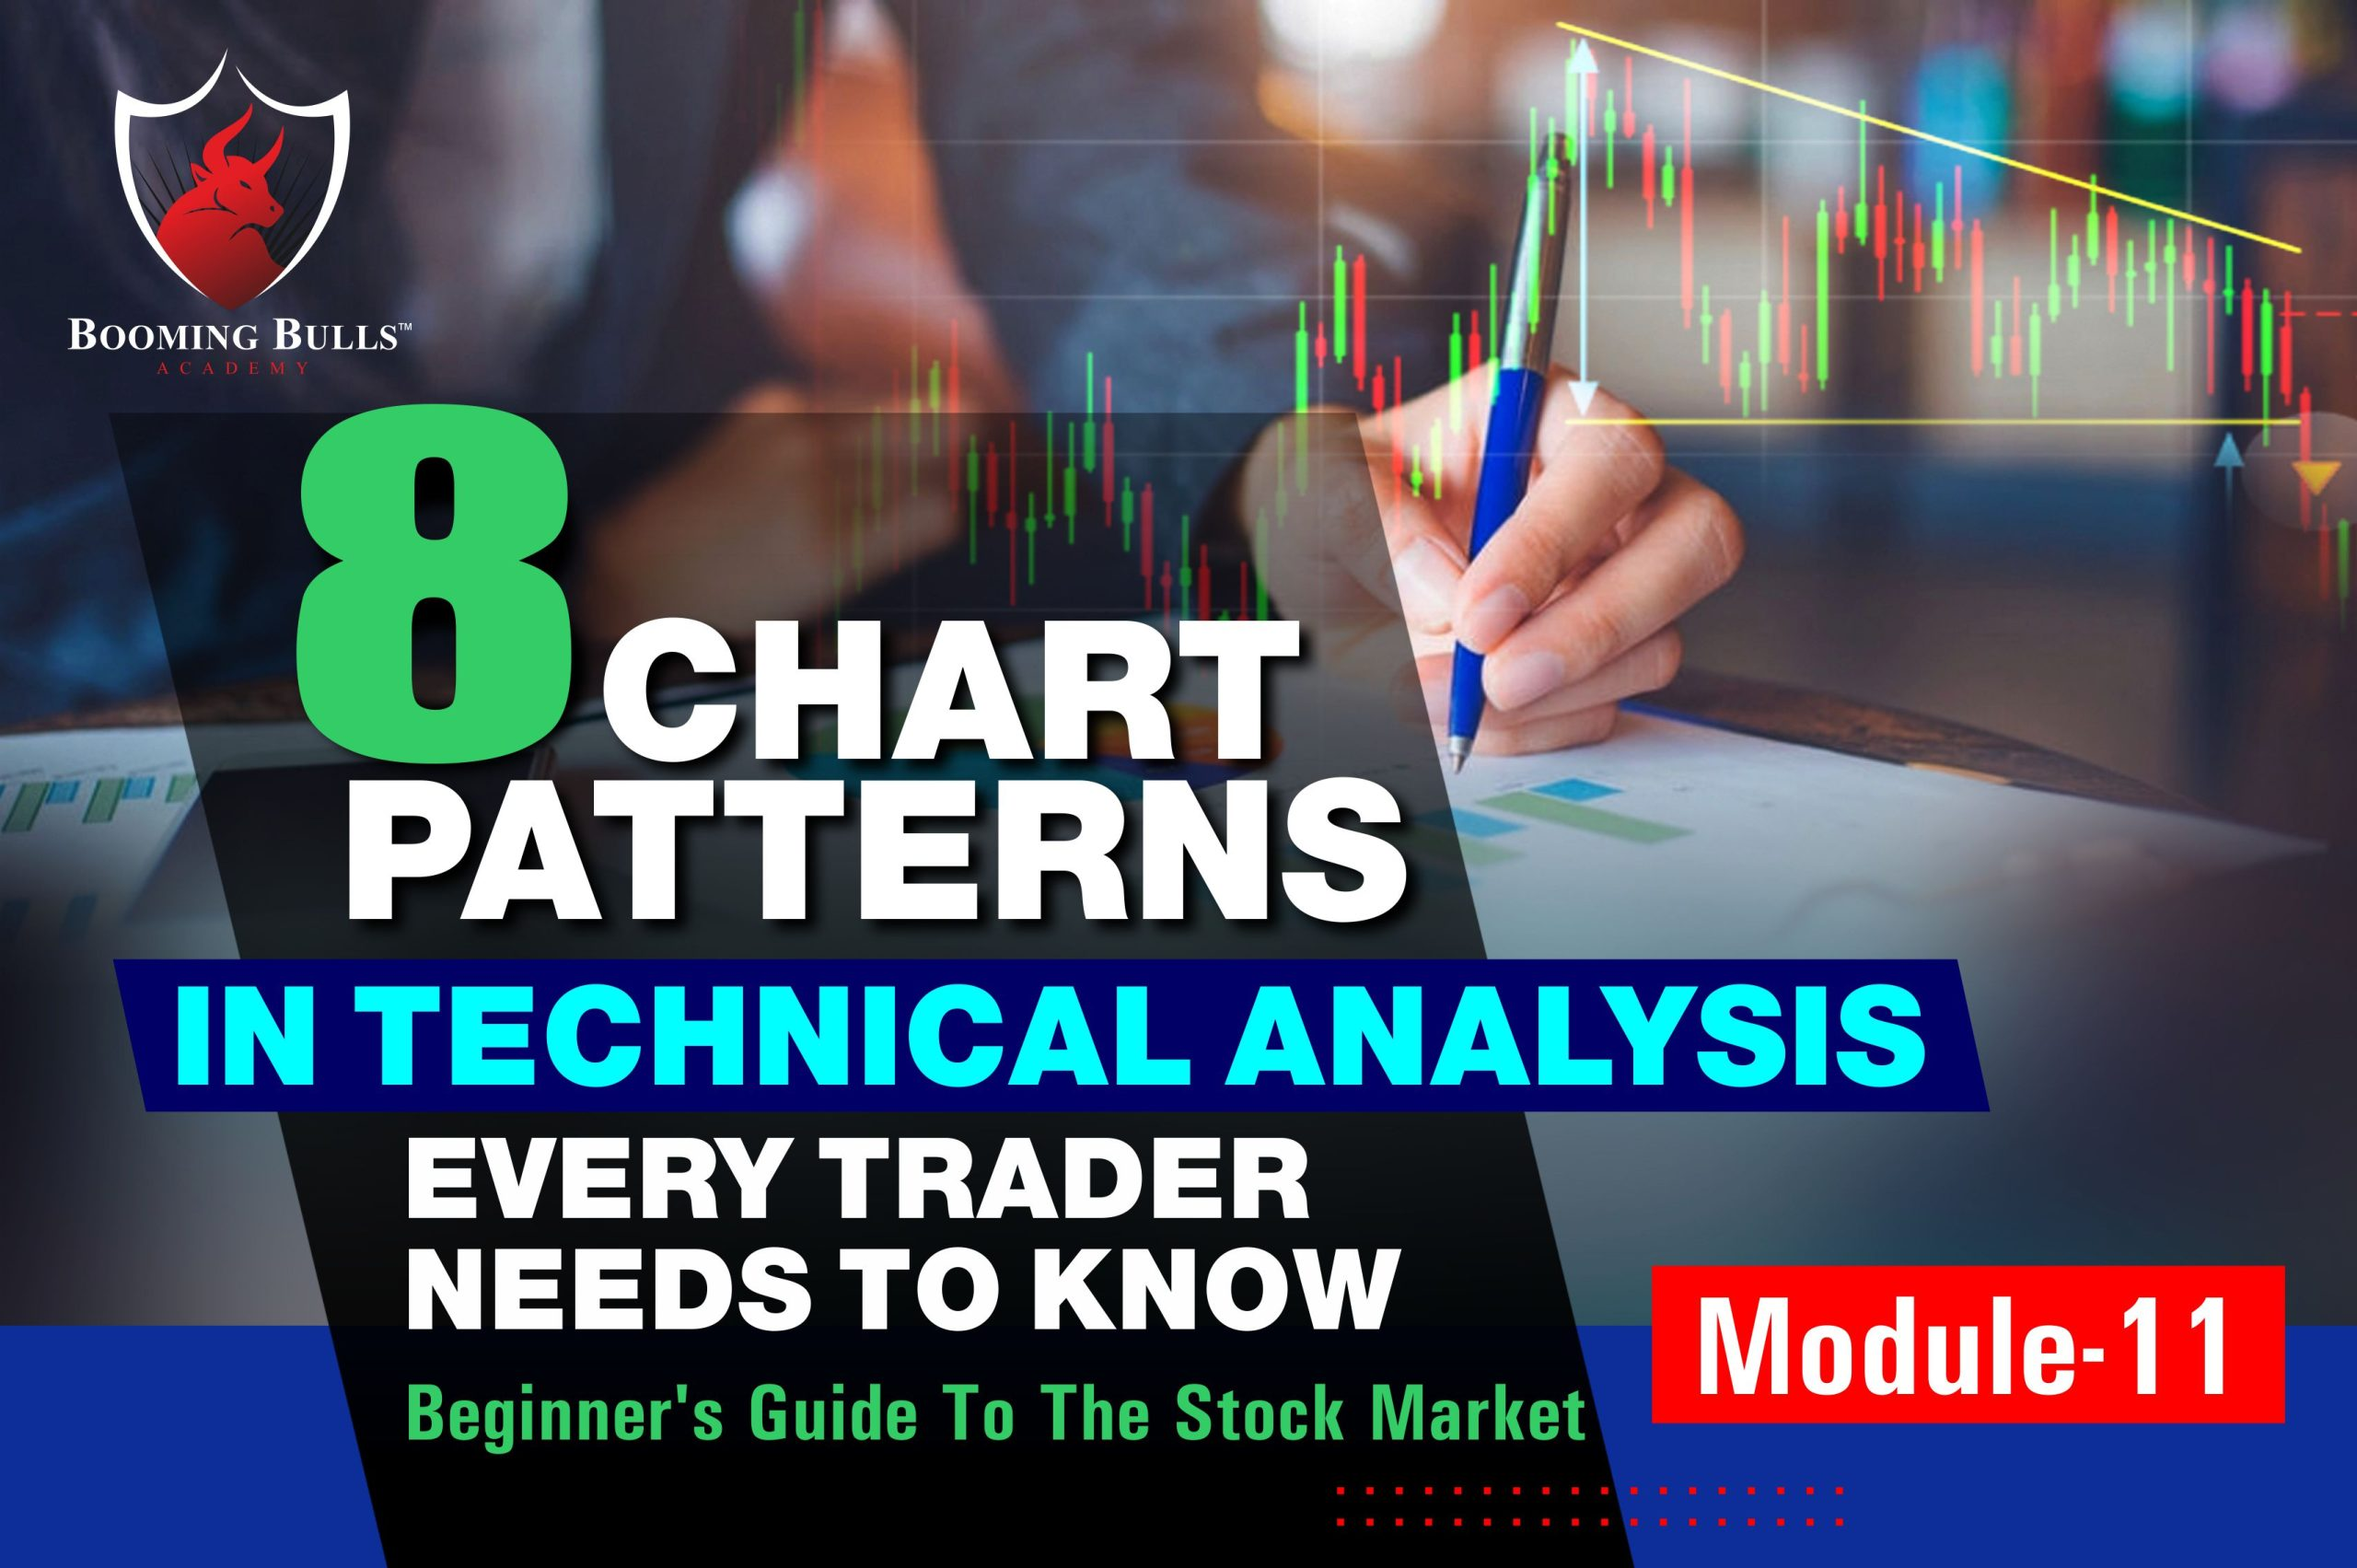 8 Chart Patterns In Technical Analysis Every Trader Needs To Know | Beginner's Guide To The Stock Market | Module 11